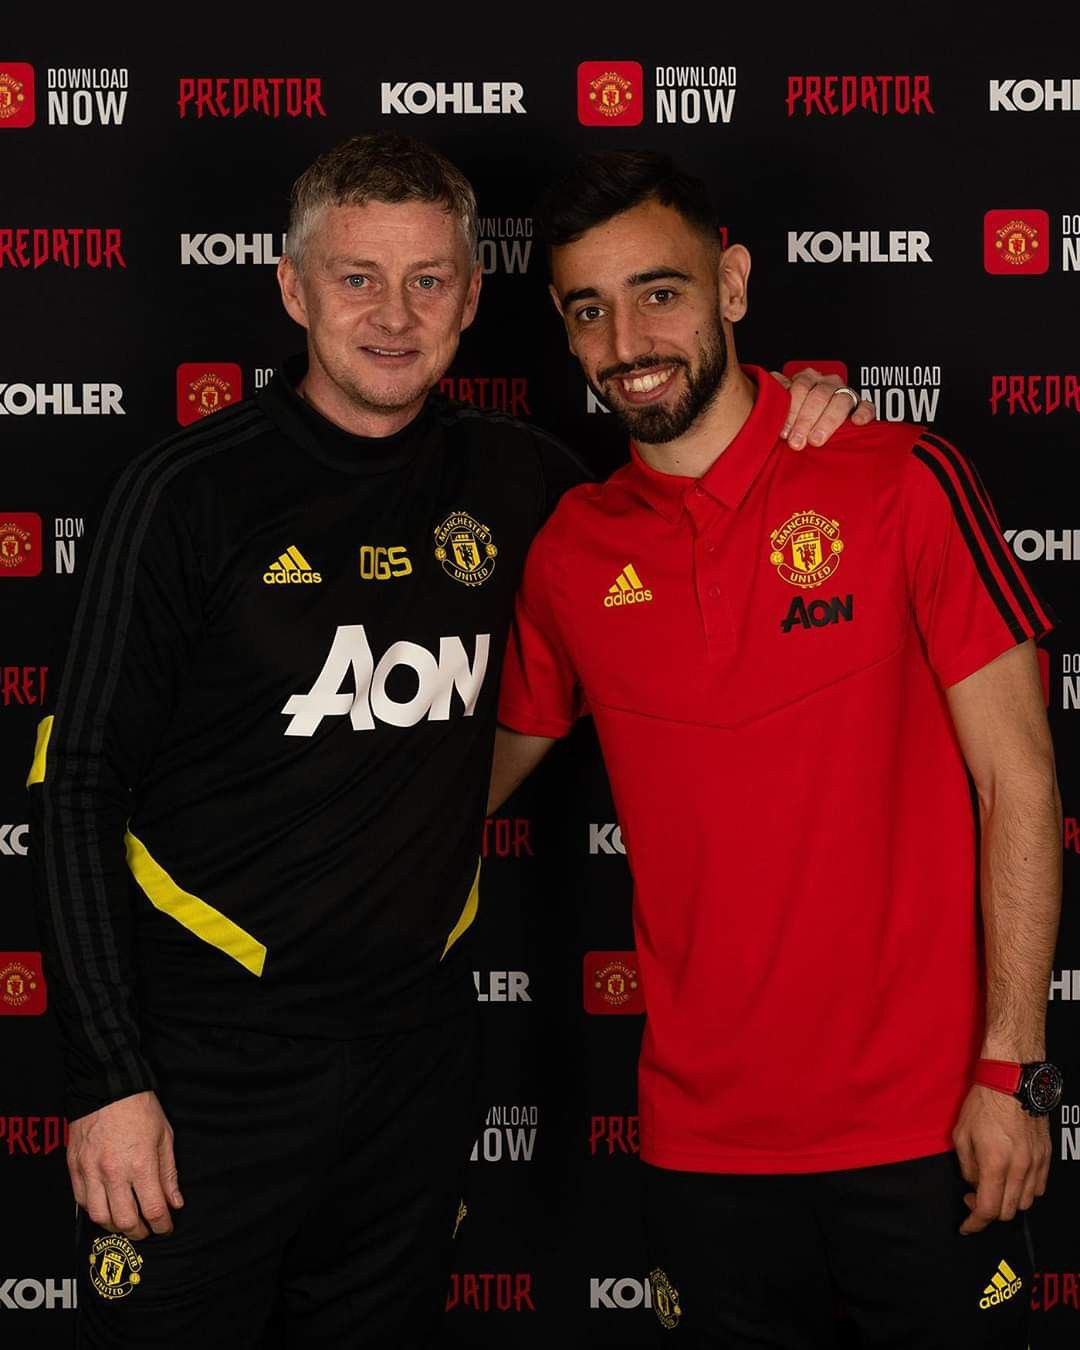 Bruno, meet Ole 😁 in 2020 Manchester united, Manchester